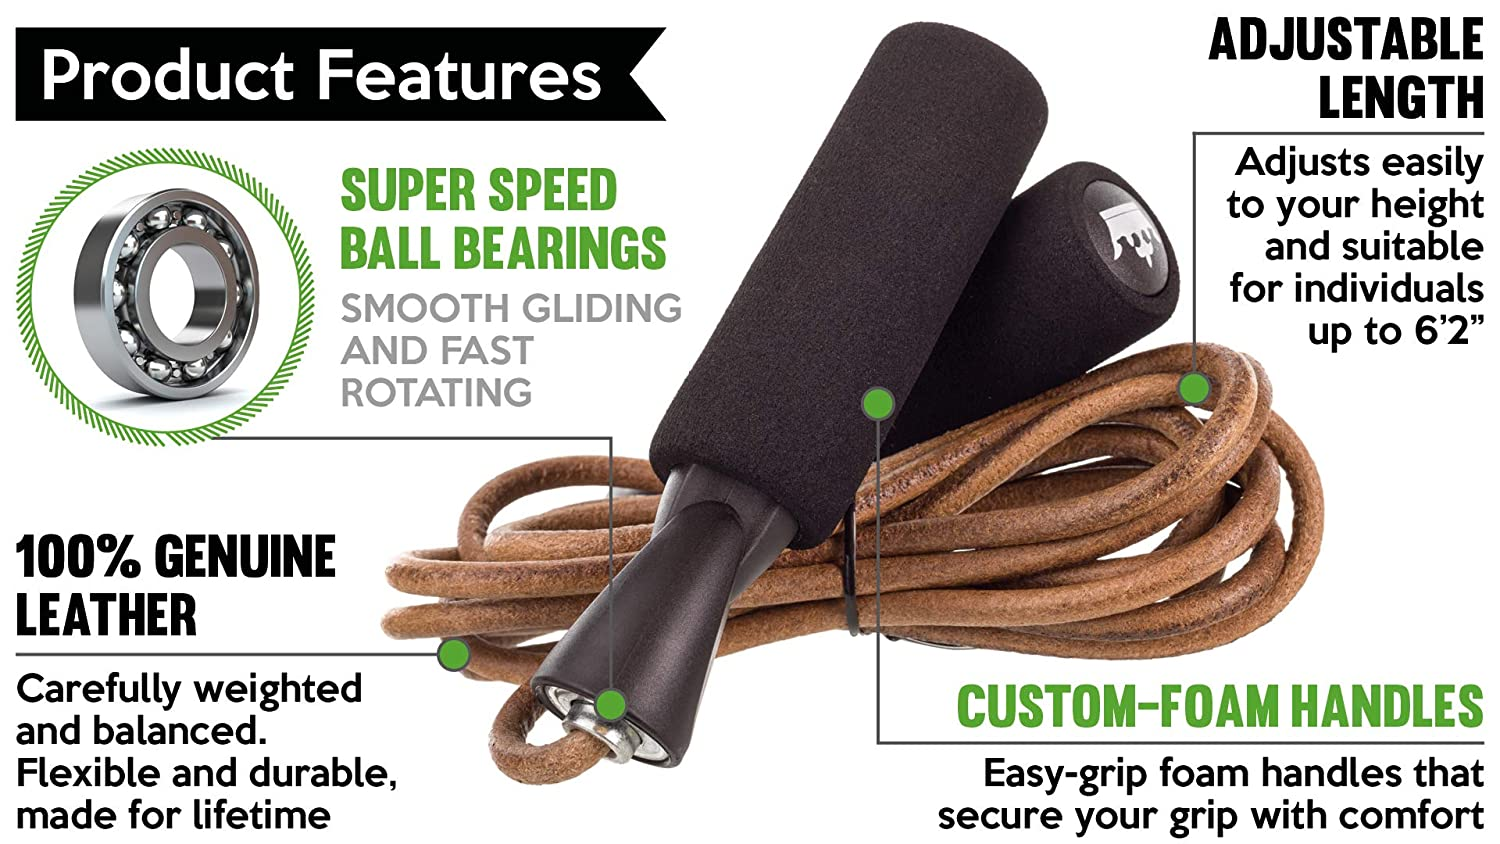 2X Leather Jump Rope Heavy Duty Crossfit Boxing Ball Bearing Fitness Ultra Speed